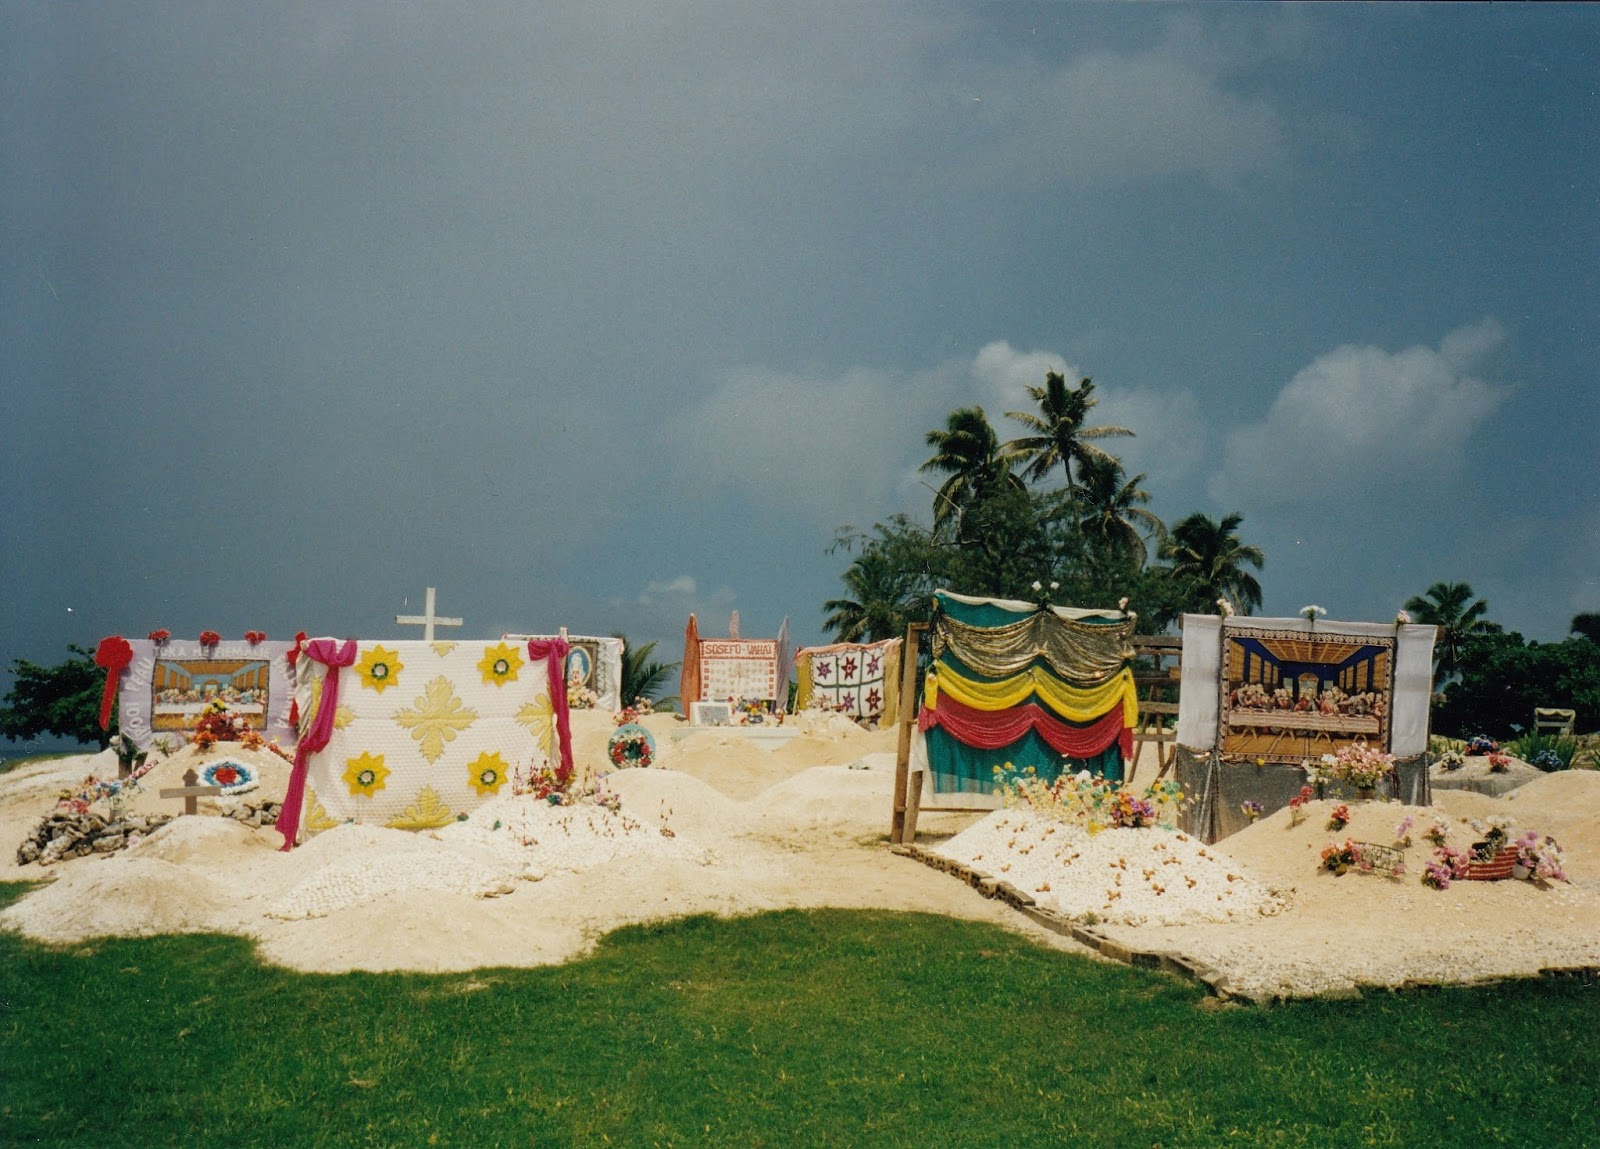 Tonga cemeteries are often bright colourful affairs